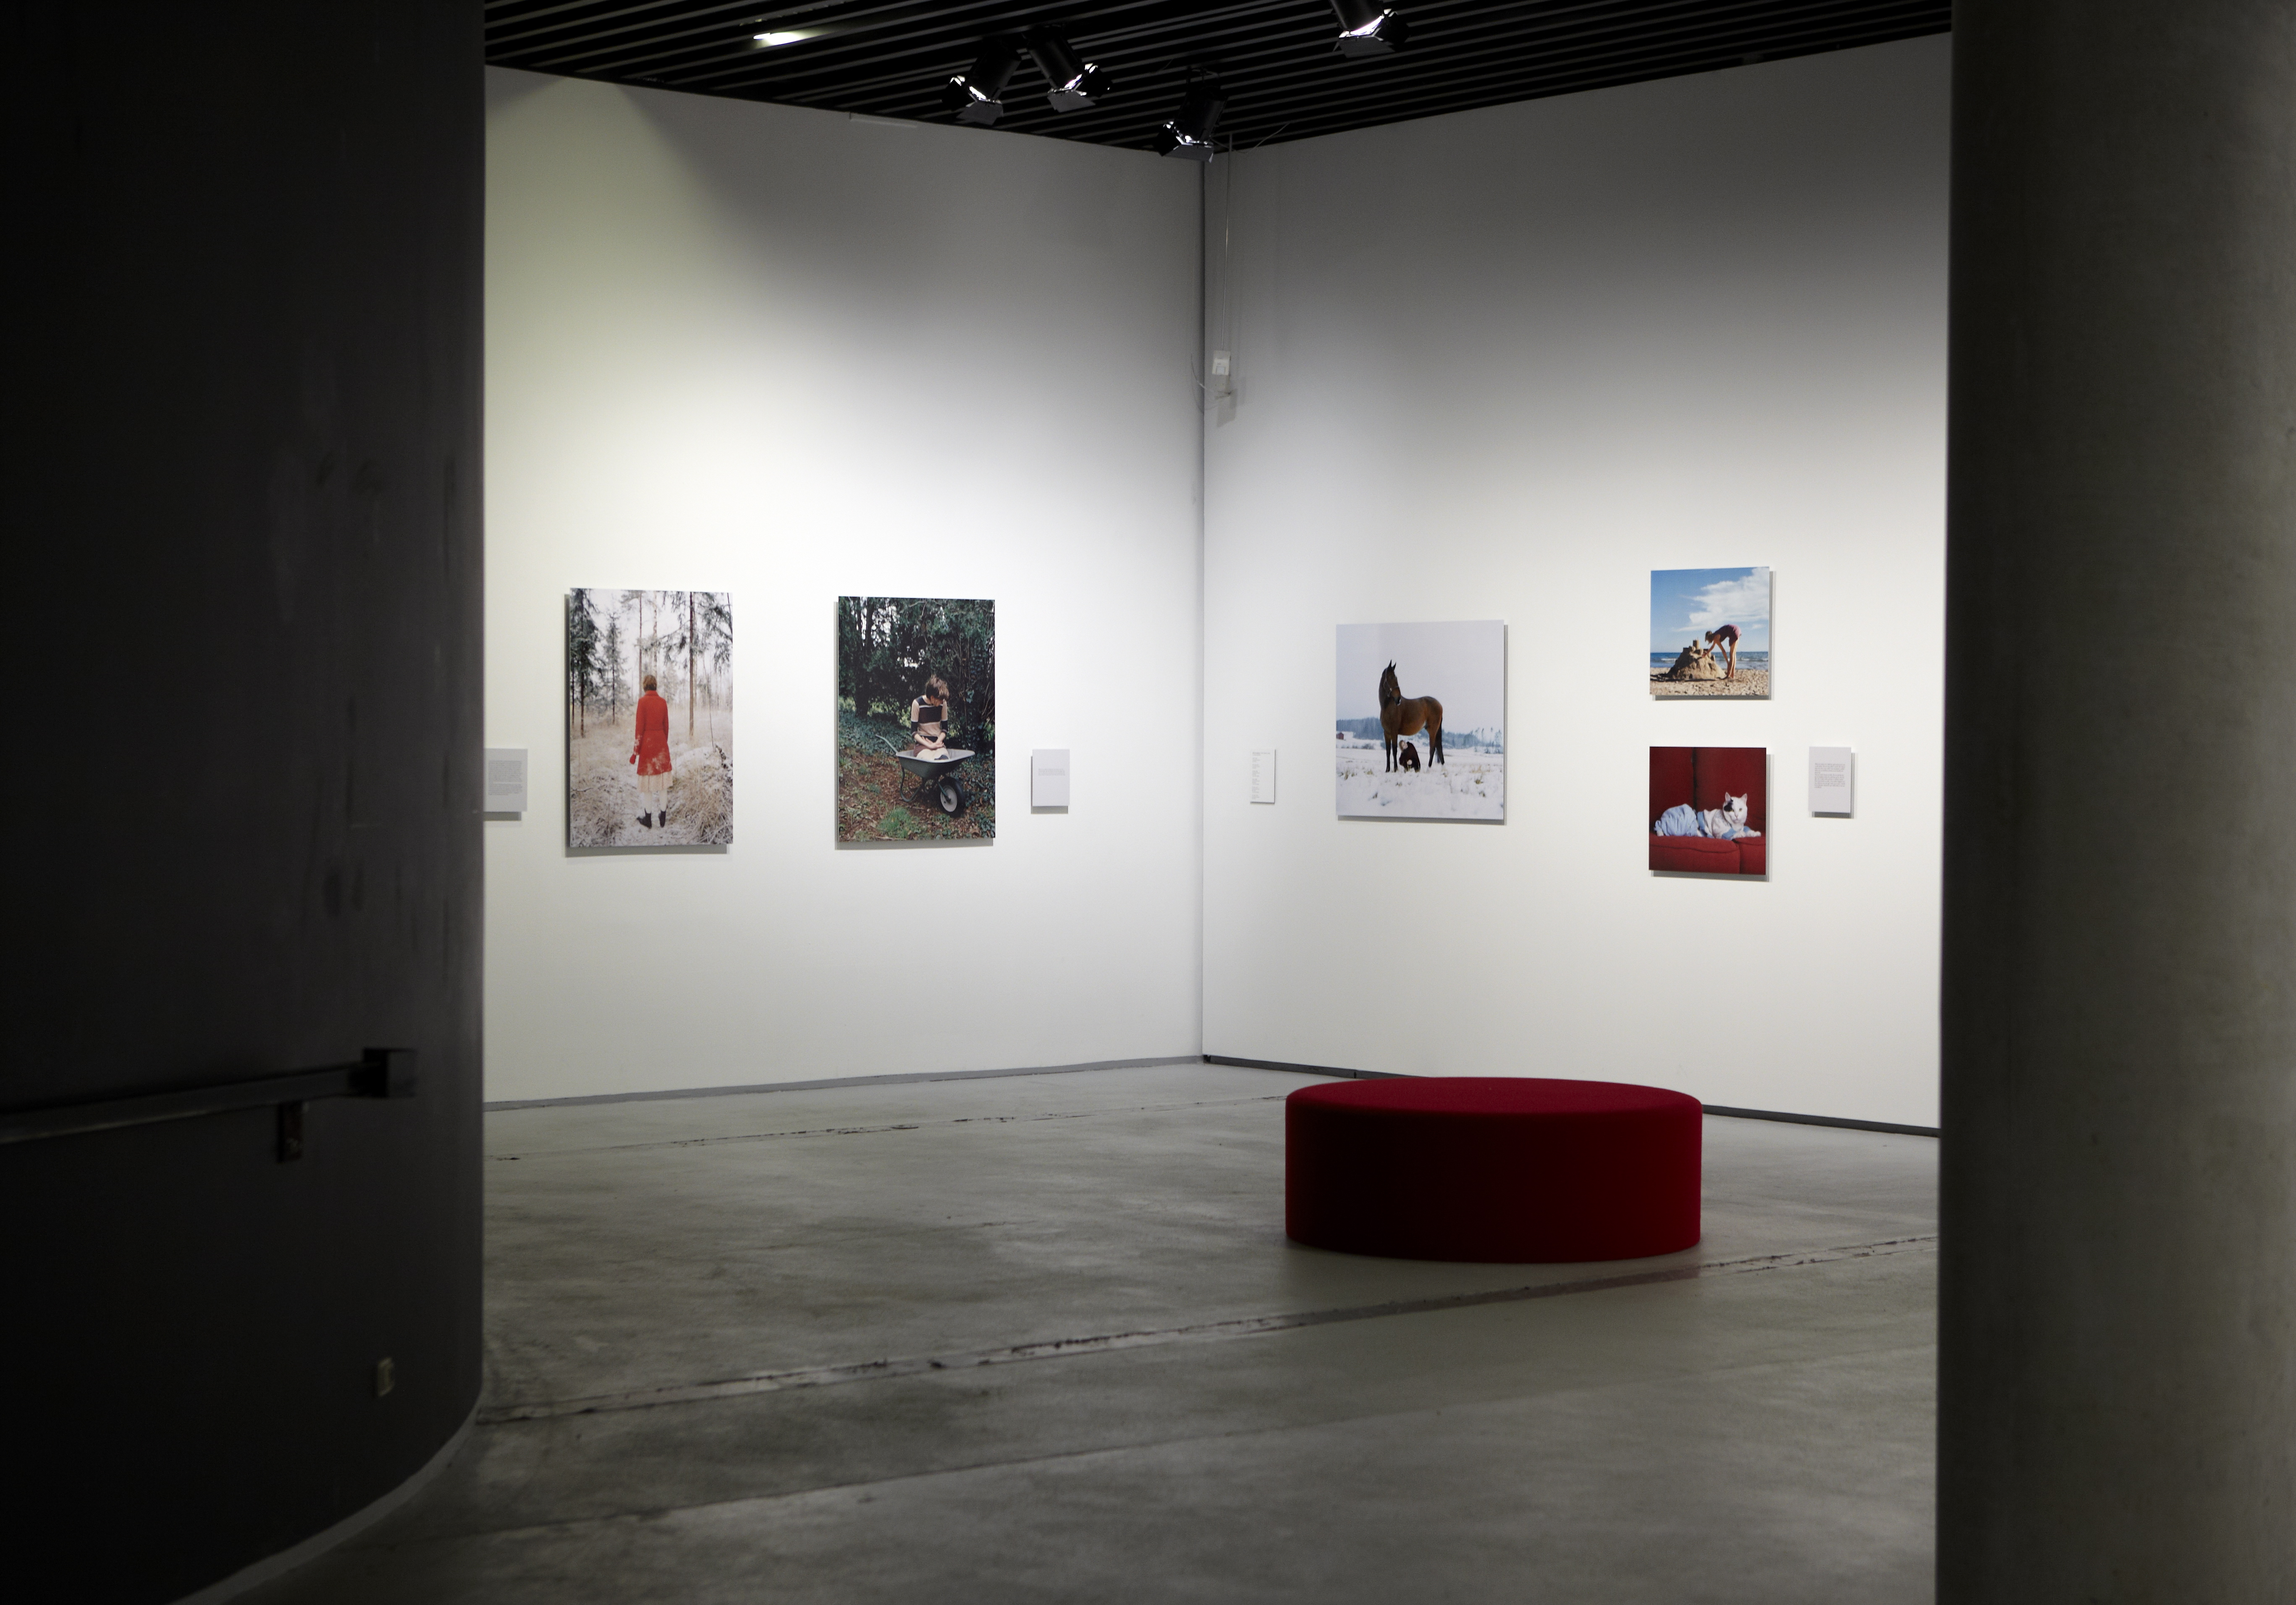 Installation View at the National Museum of Photography, Copenhagen, Denmark 2011.